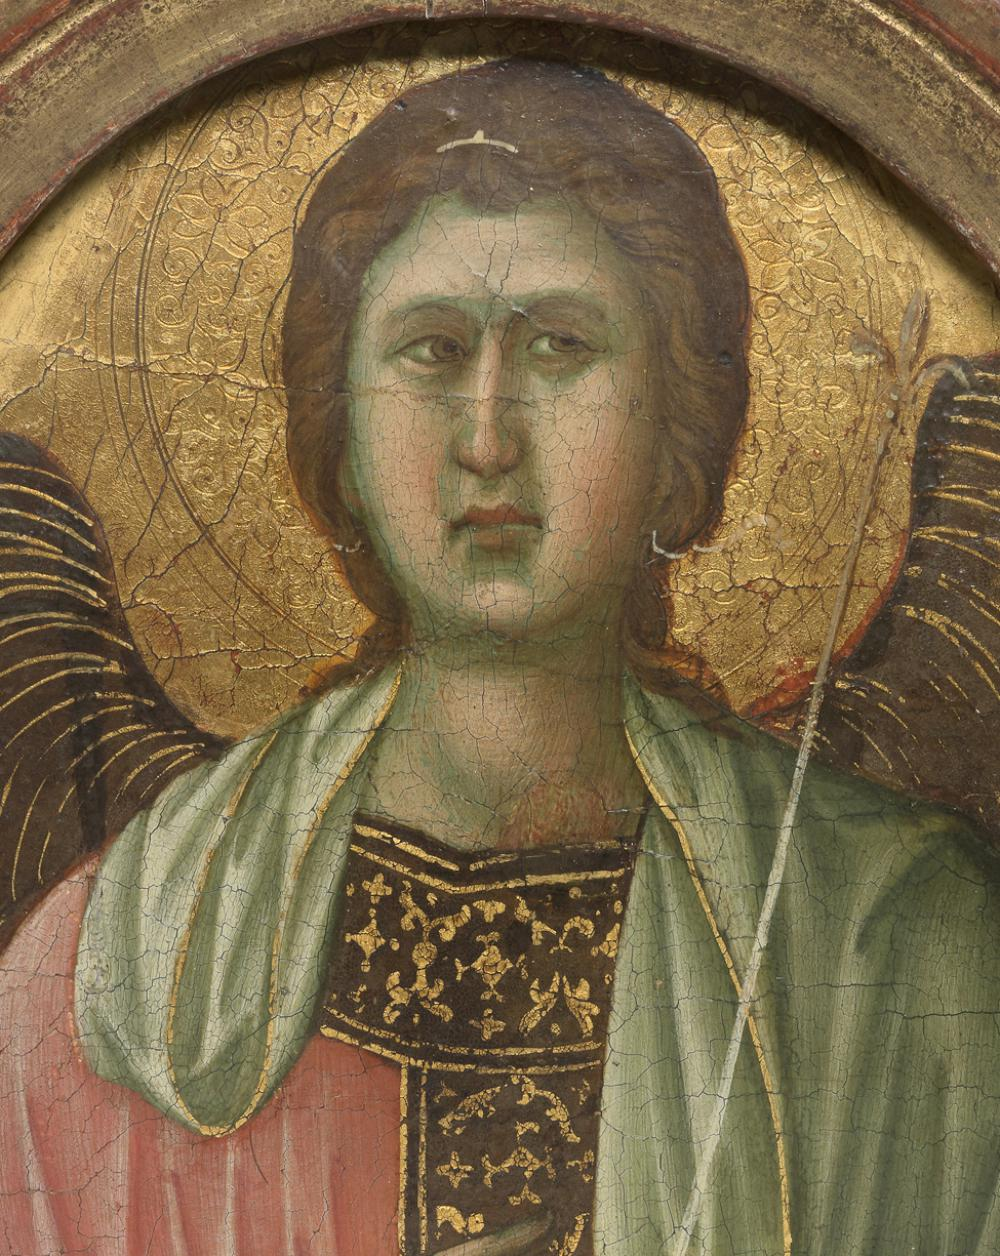 Duccio, Angel (Pinnacle from the Maestà altarpiece), ca. 1308-1311